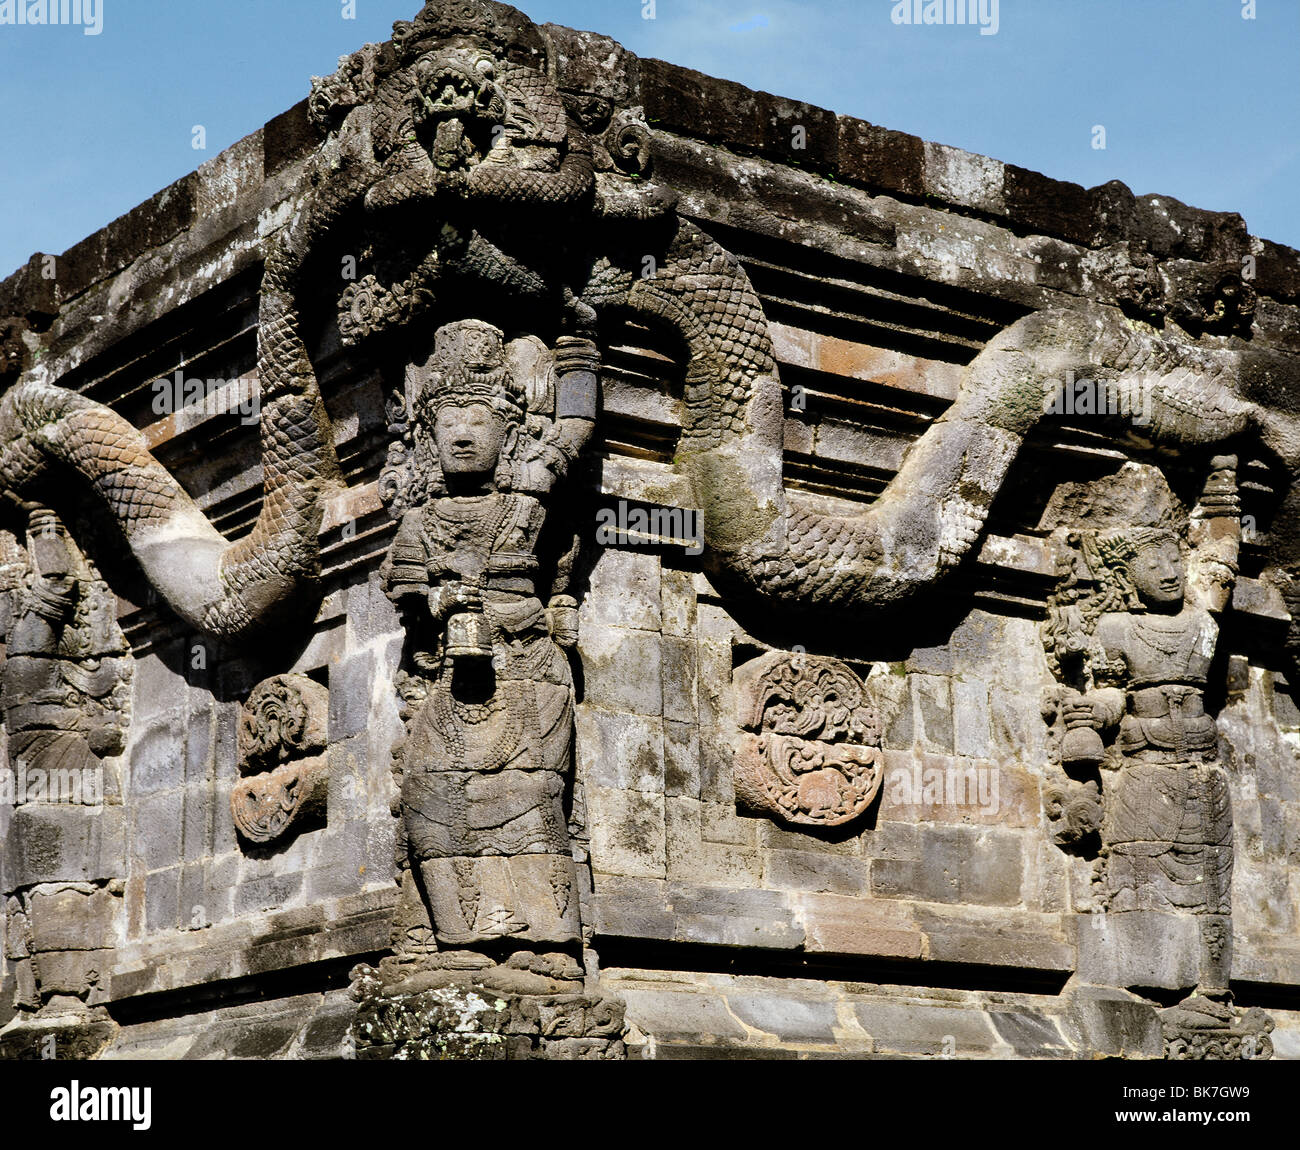 Detail of the 12th century Candi Penataran which lies about 10 kilometres to the north of Blitar, East Java, Indonesia Stock Photo